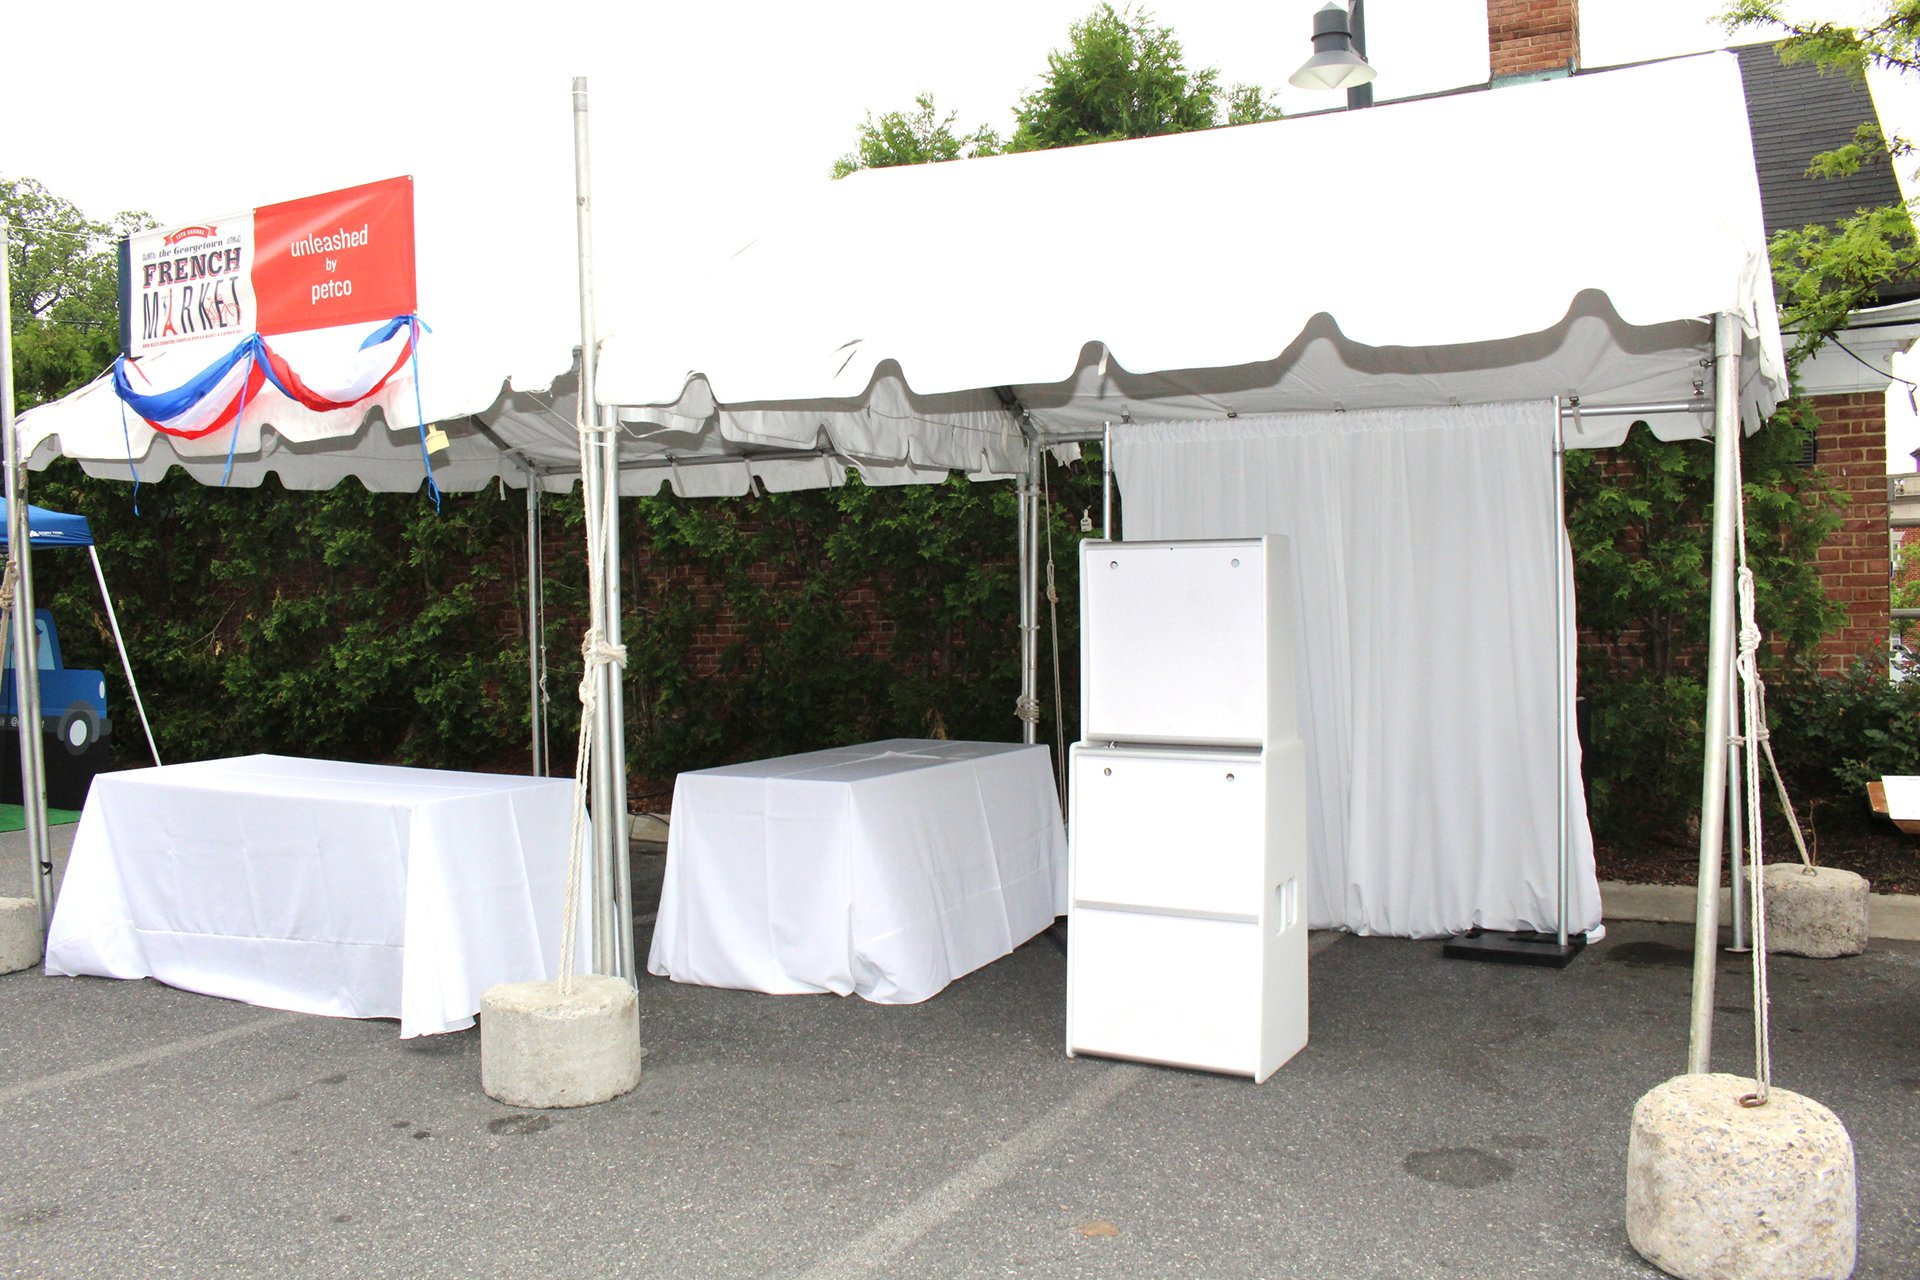 69_Georgetown_french_market_2016_outdoor_tent_event_video_AlistPhotoBooth_AlistPhotoBooths_Photo_Booth_Photobooth_MD_VA_DC_Rental_rent_corporate_branding_so ... & Outdoor Events